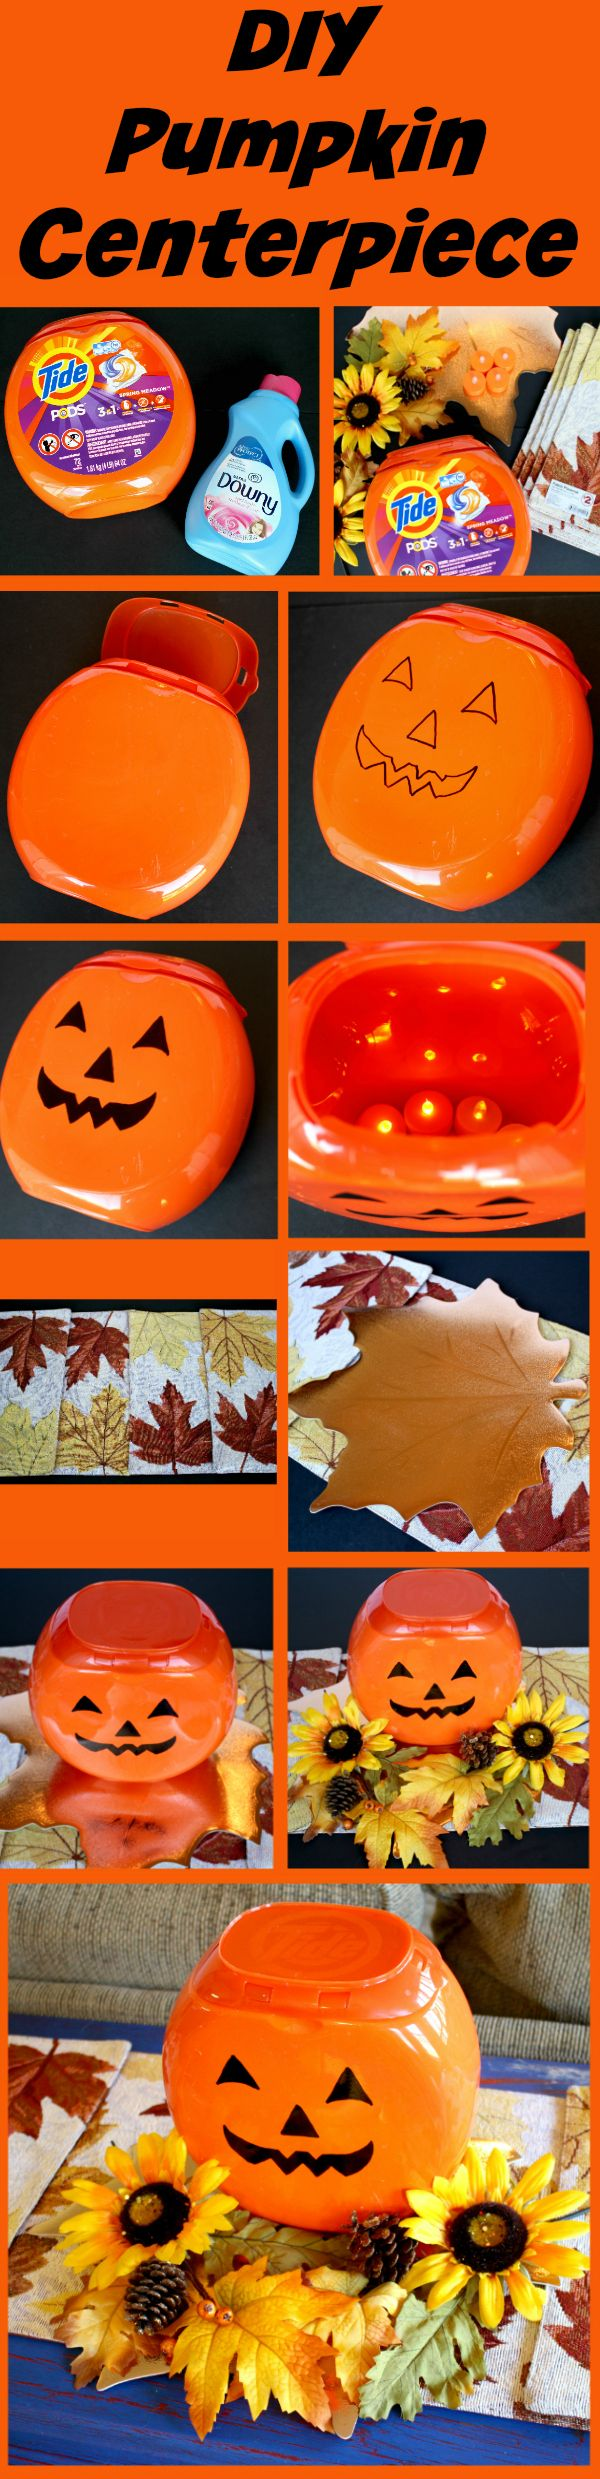 Step-by-step instructions on how to make DIY Pumpkin Centerpiece for Halloween using Tide PODS container. Save money on this centerpiece at @familydollar using Smart Coupons! http://freebies4mom.com/familysavings/ #FamilySavings #ad